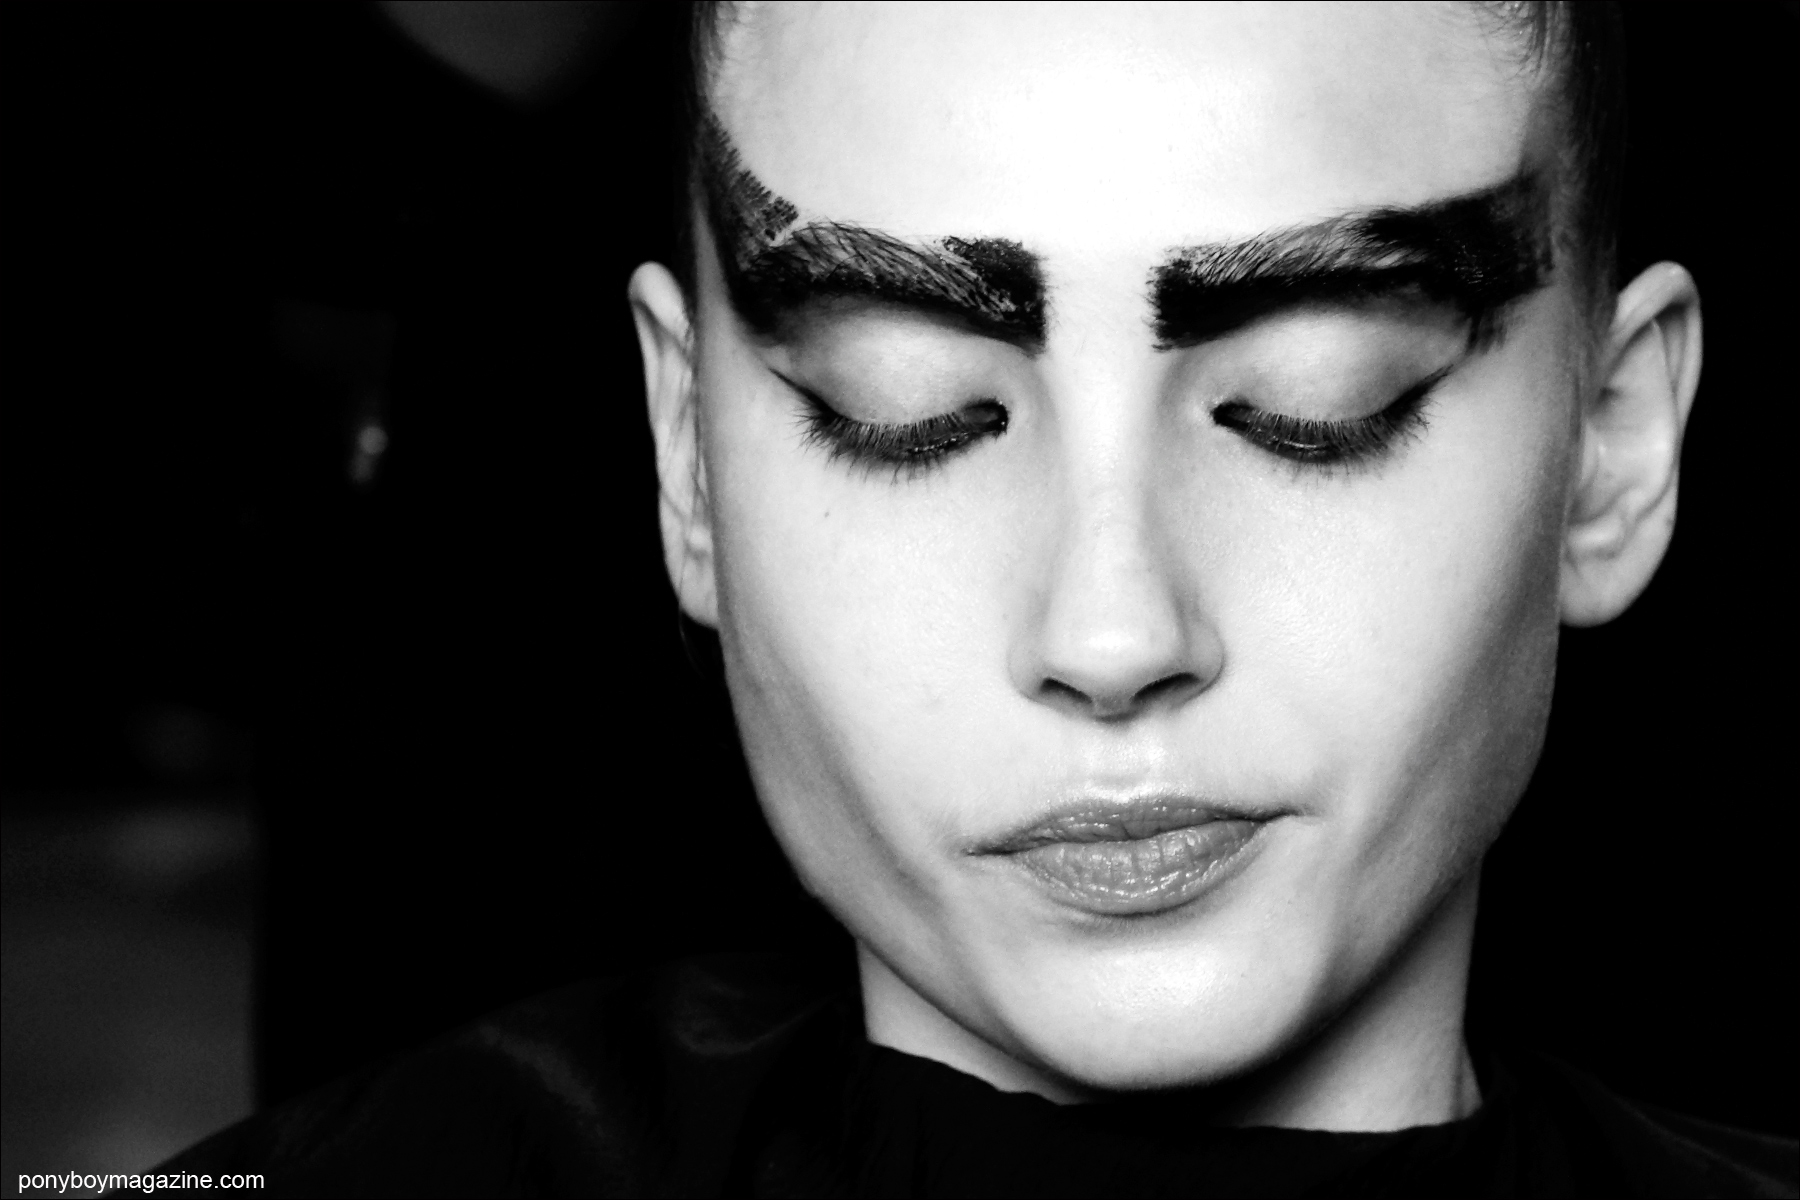 Dramatic bold eyebrows, photographed backstage at Chromat F/W15 collection at Milk Studios. Photographed by Alexander Thompson for Ponyboy magazine.